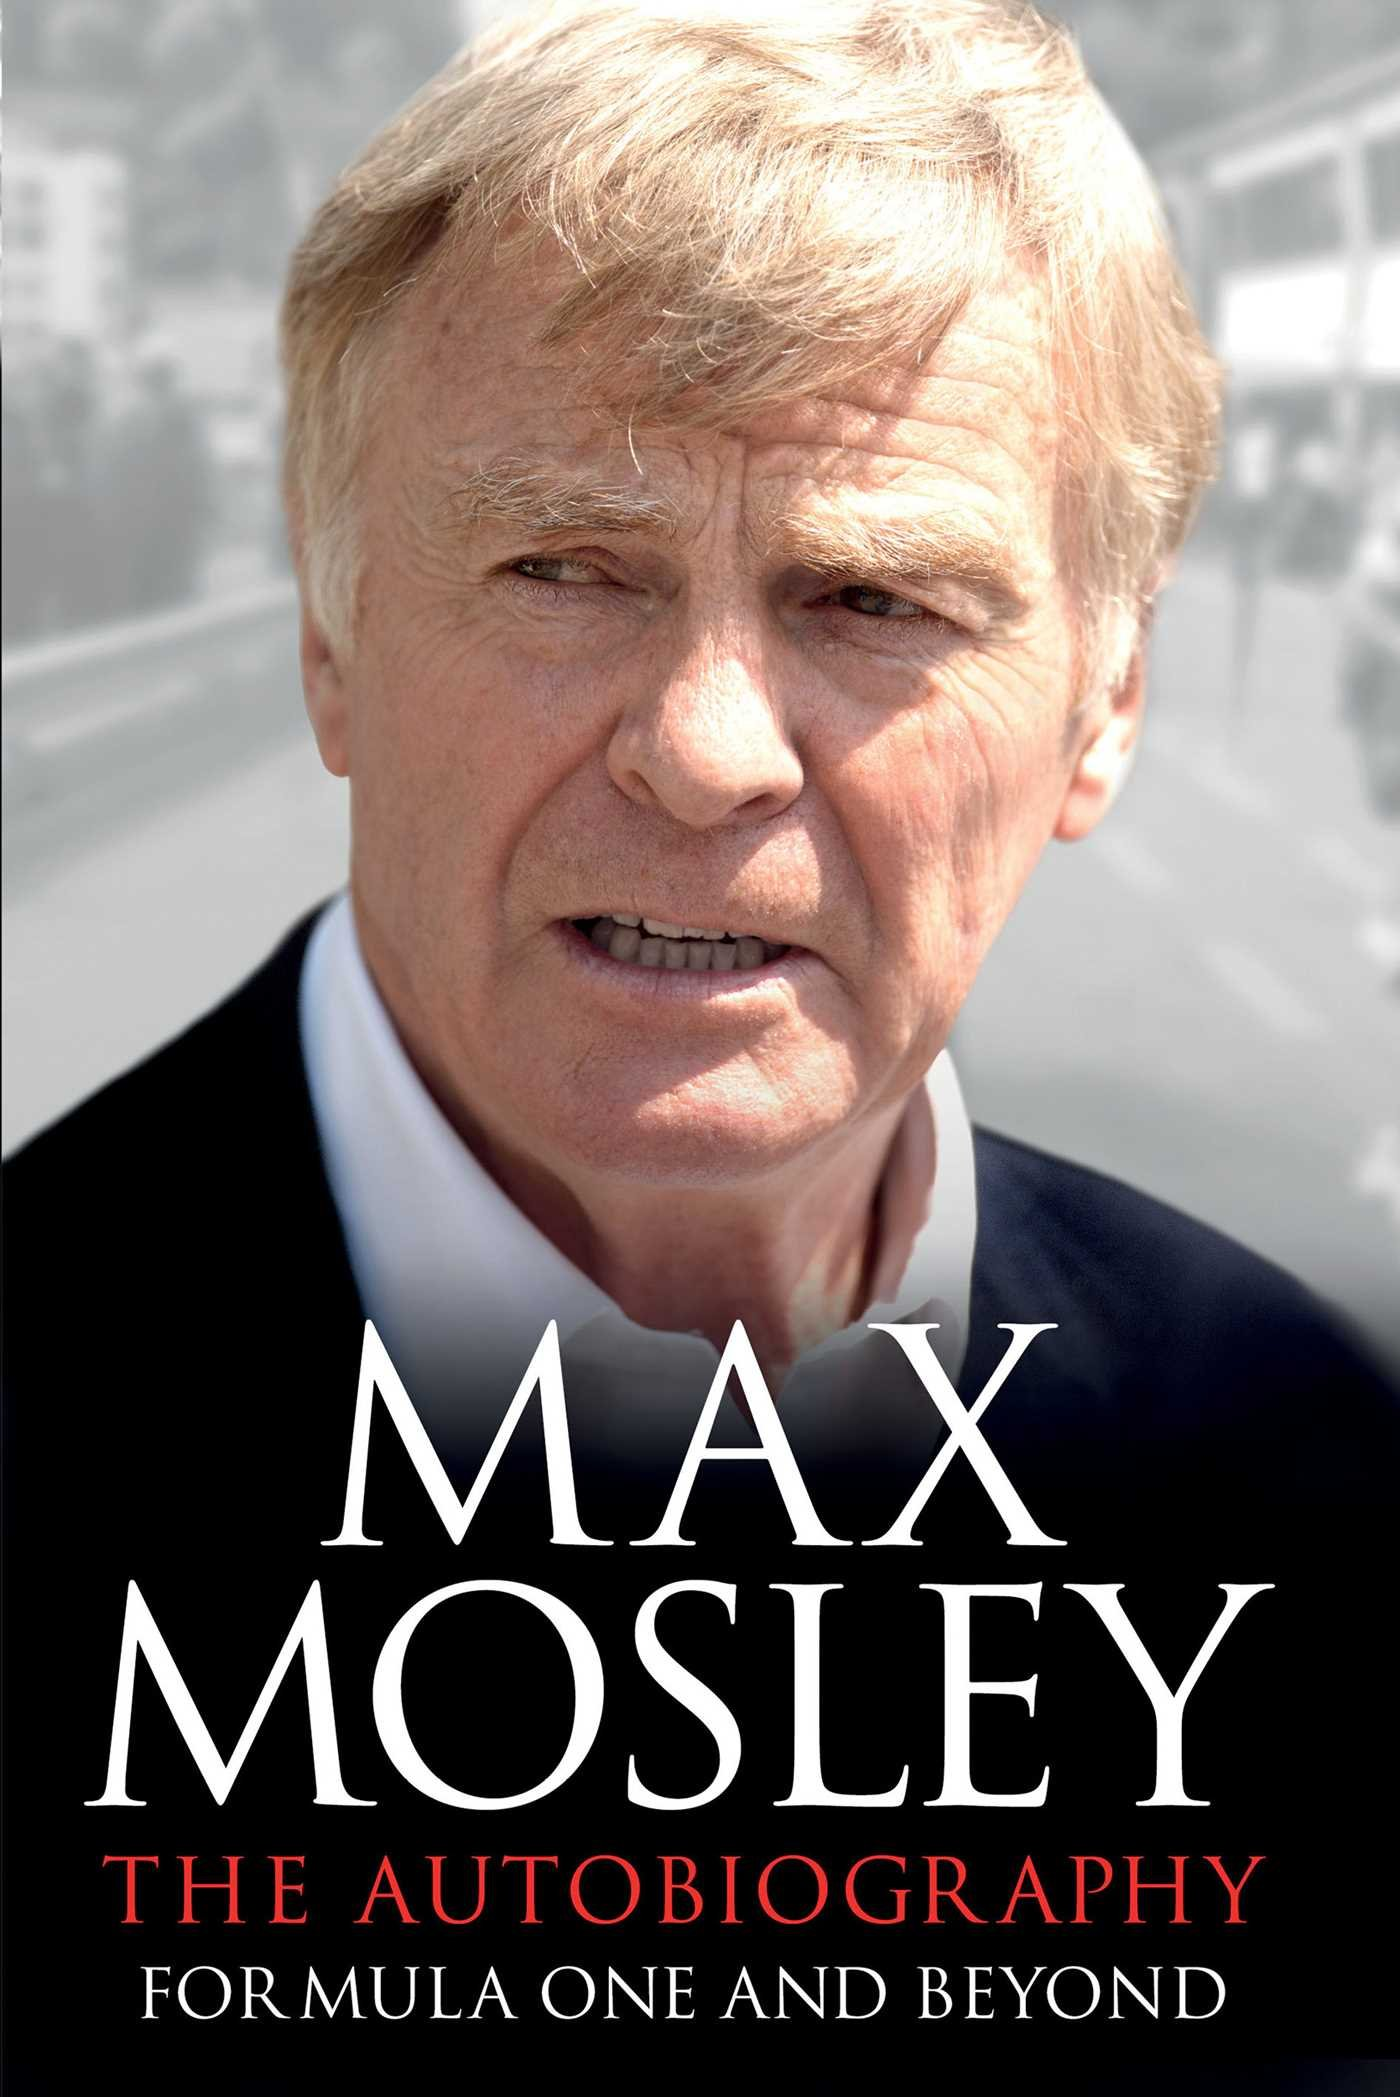 Max Mosley The Autobiography Formula One and Beyond